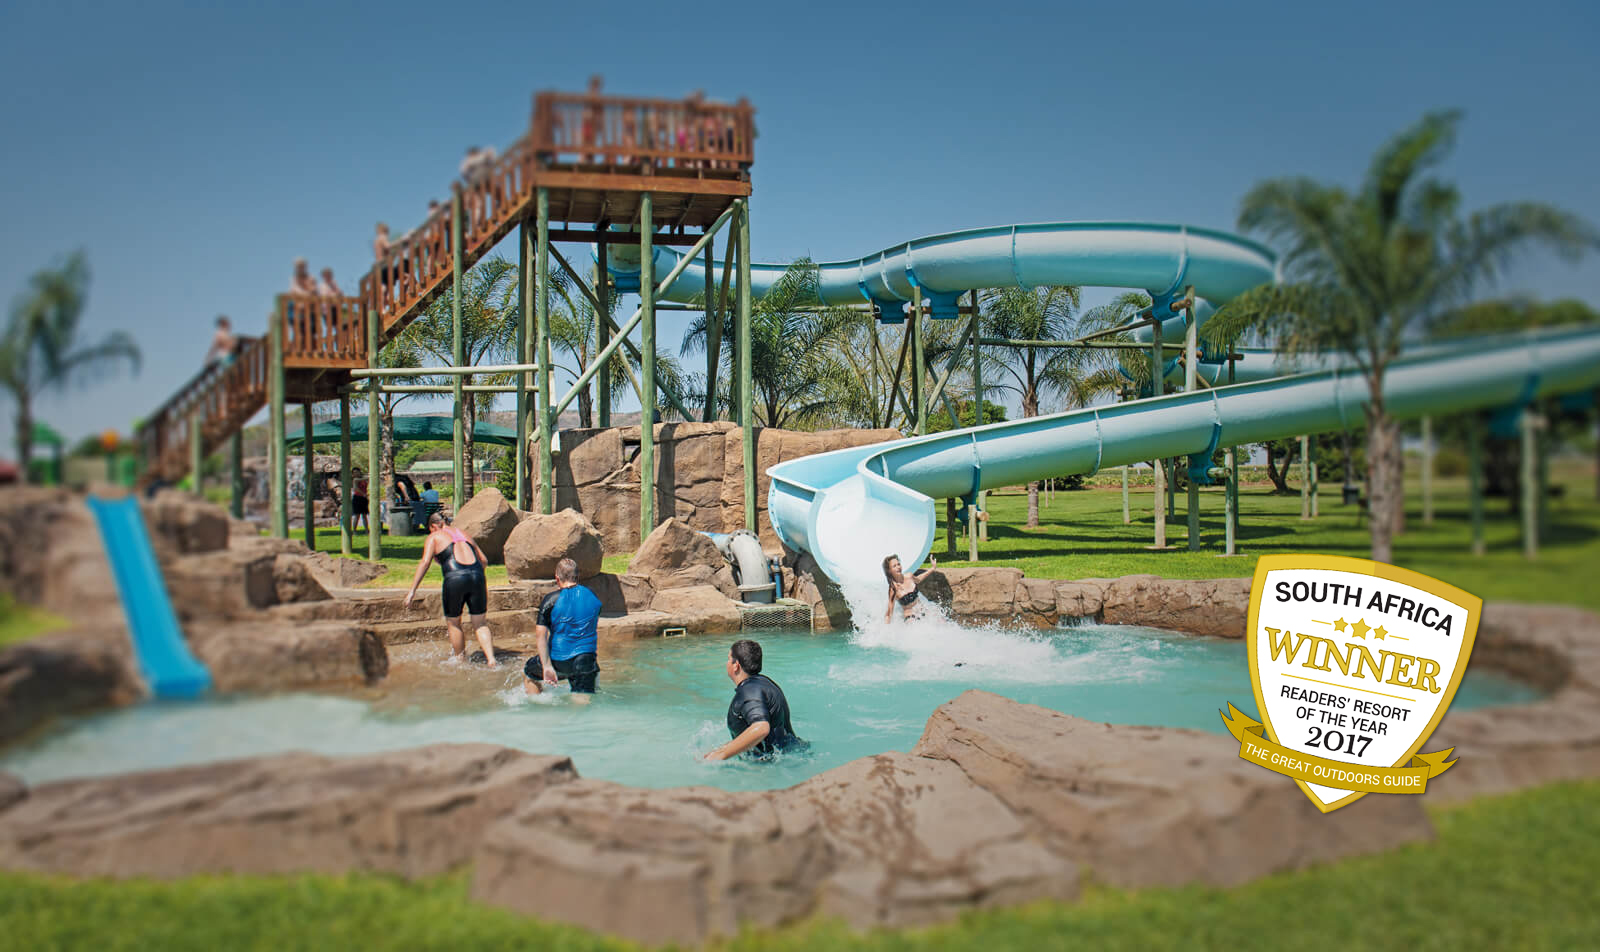 Aug 08, · Key Lime Cove, Gurnee, Illinois. K likes. KeyLime Cove was a resort and indoor waterpark located in Gurnee, Illinois near Six Flags Great America/5().